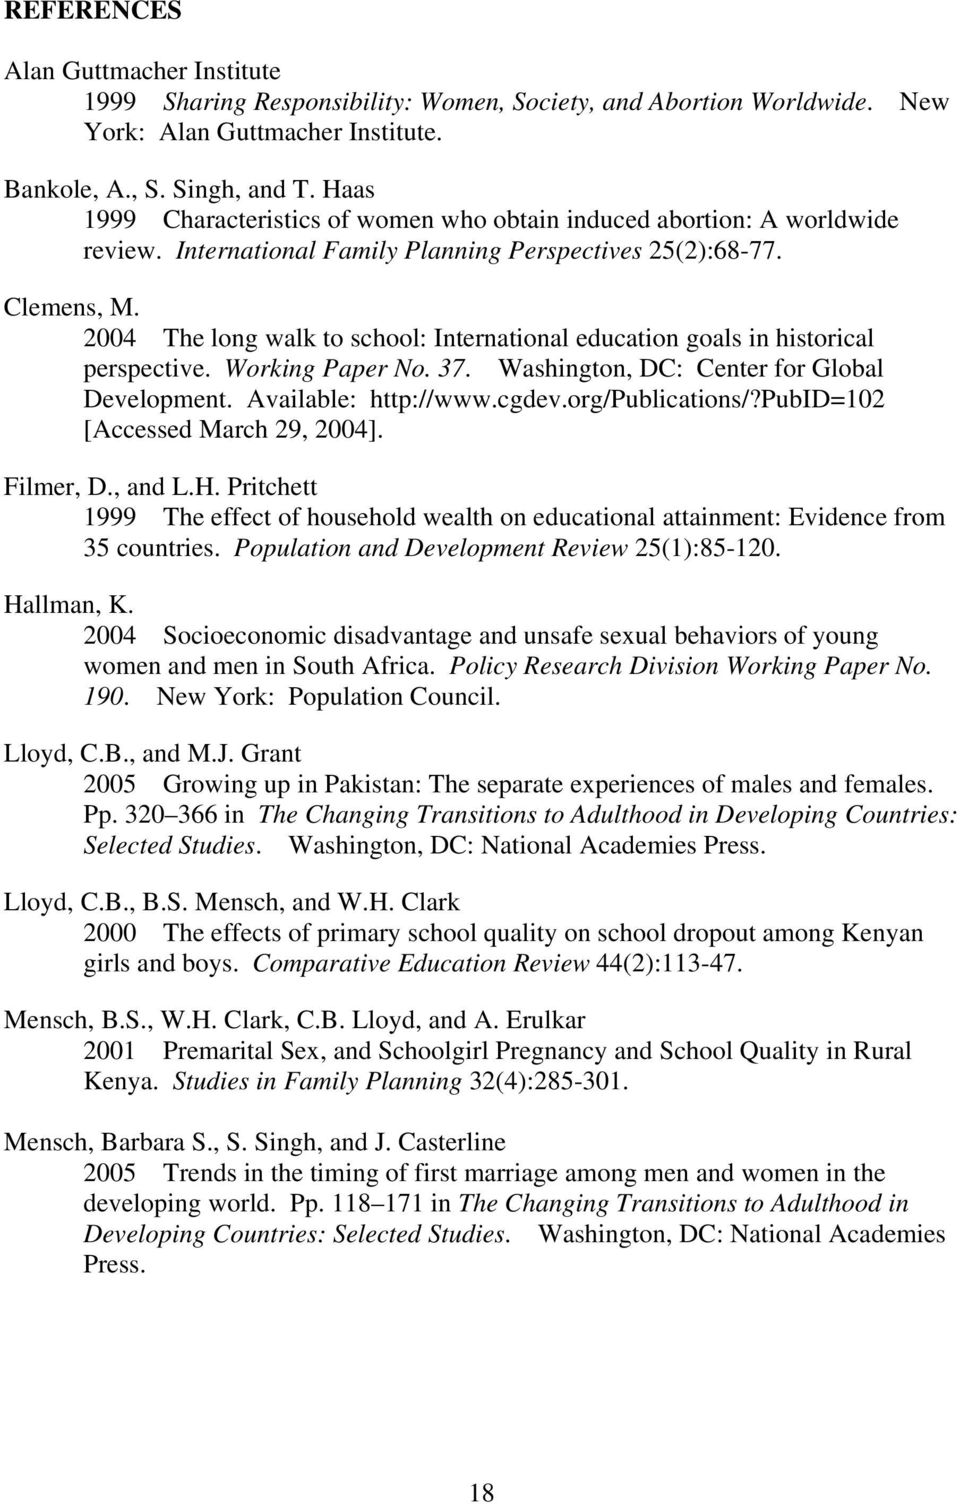 2004 The long walk to school: International education goals in historical perspective. Working Paper No. 37. Washington, DC: Center for Global Development. Available: http://www.cgdev.